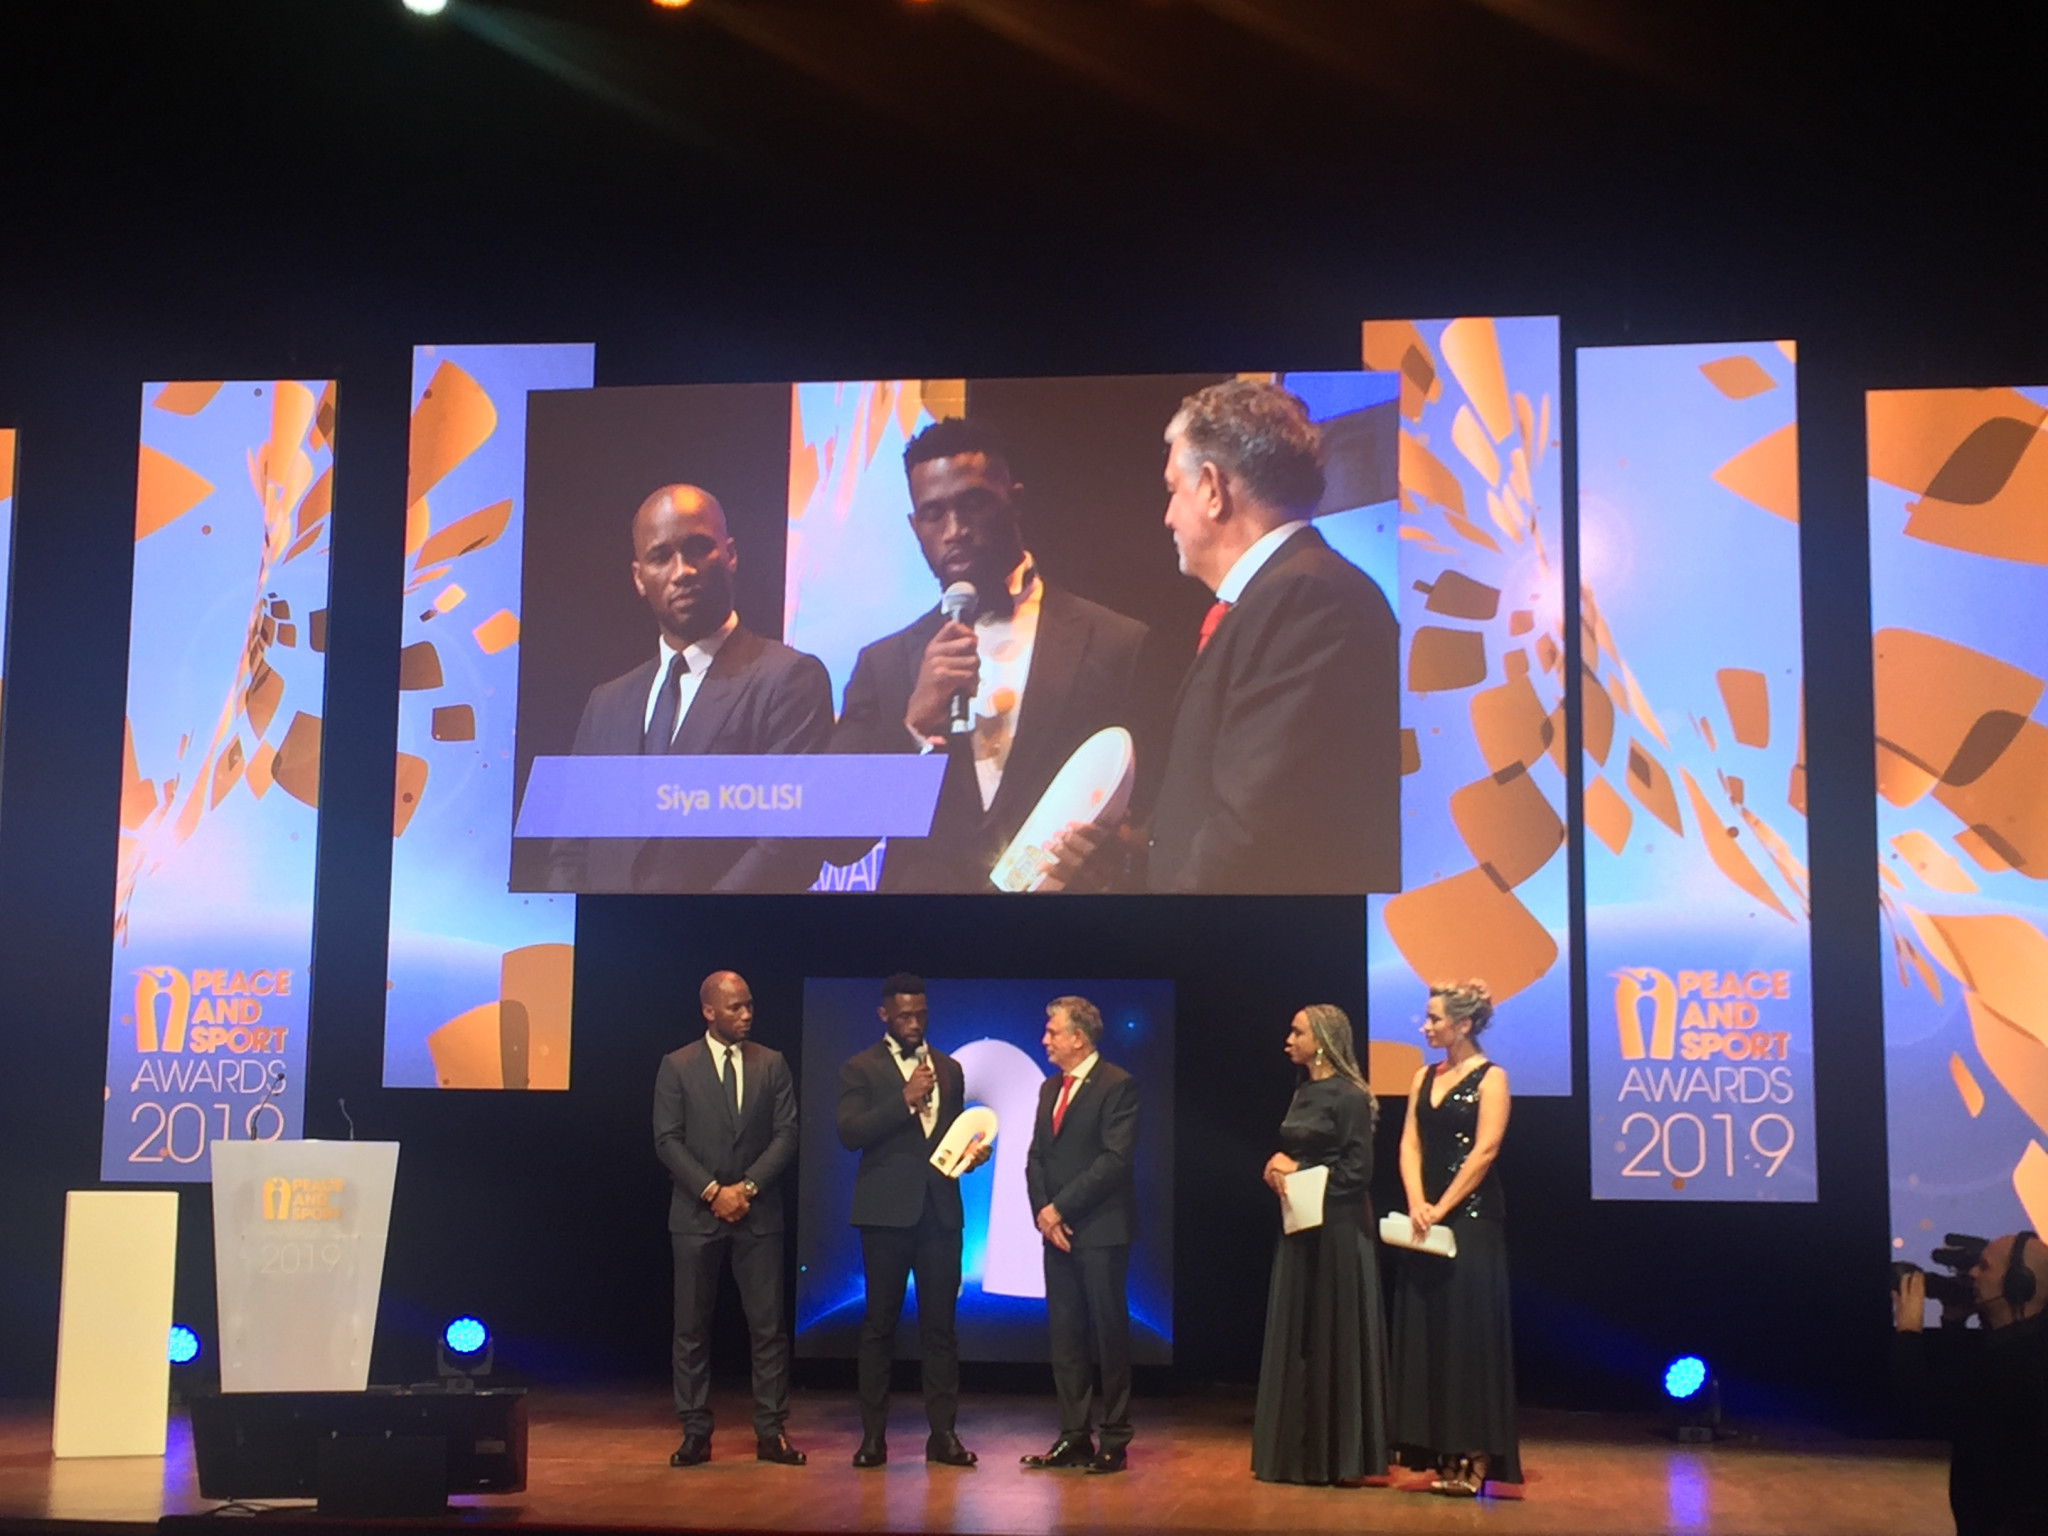 South African Rugby World Cup winner Siya Kolisi received the 2019 Champion of the Year award ©ITG